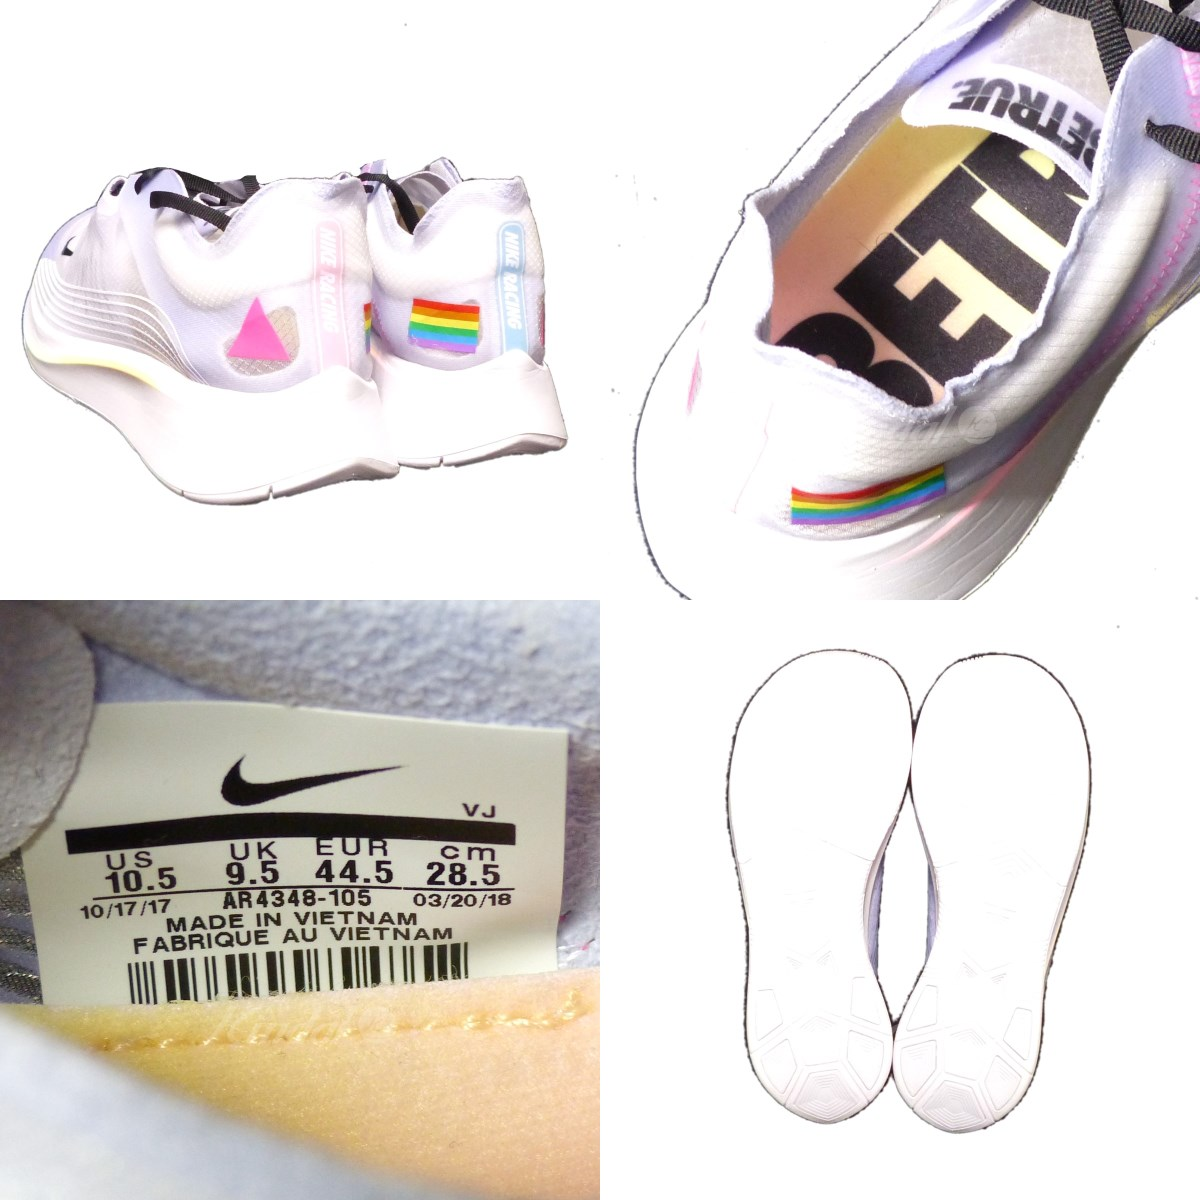 1d80f94dba36 kindal  NIKE ZOOM FLY BETRUE sneakers white size  US10. 5 (Nike ...